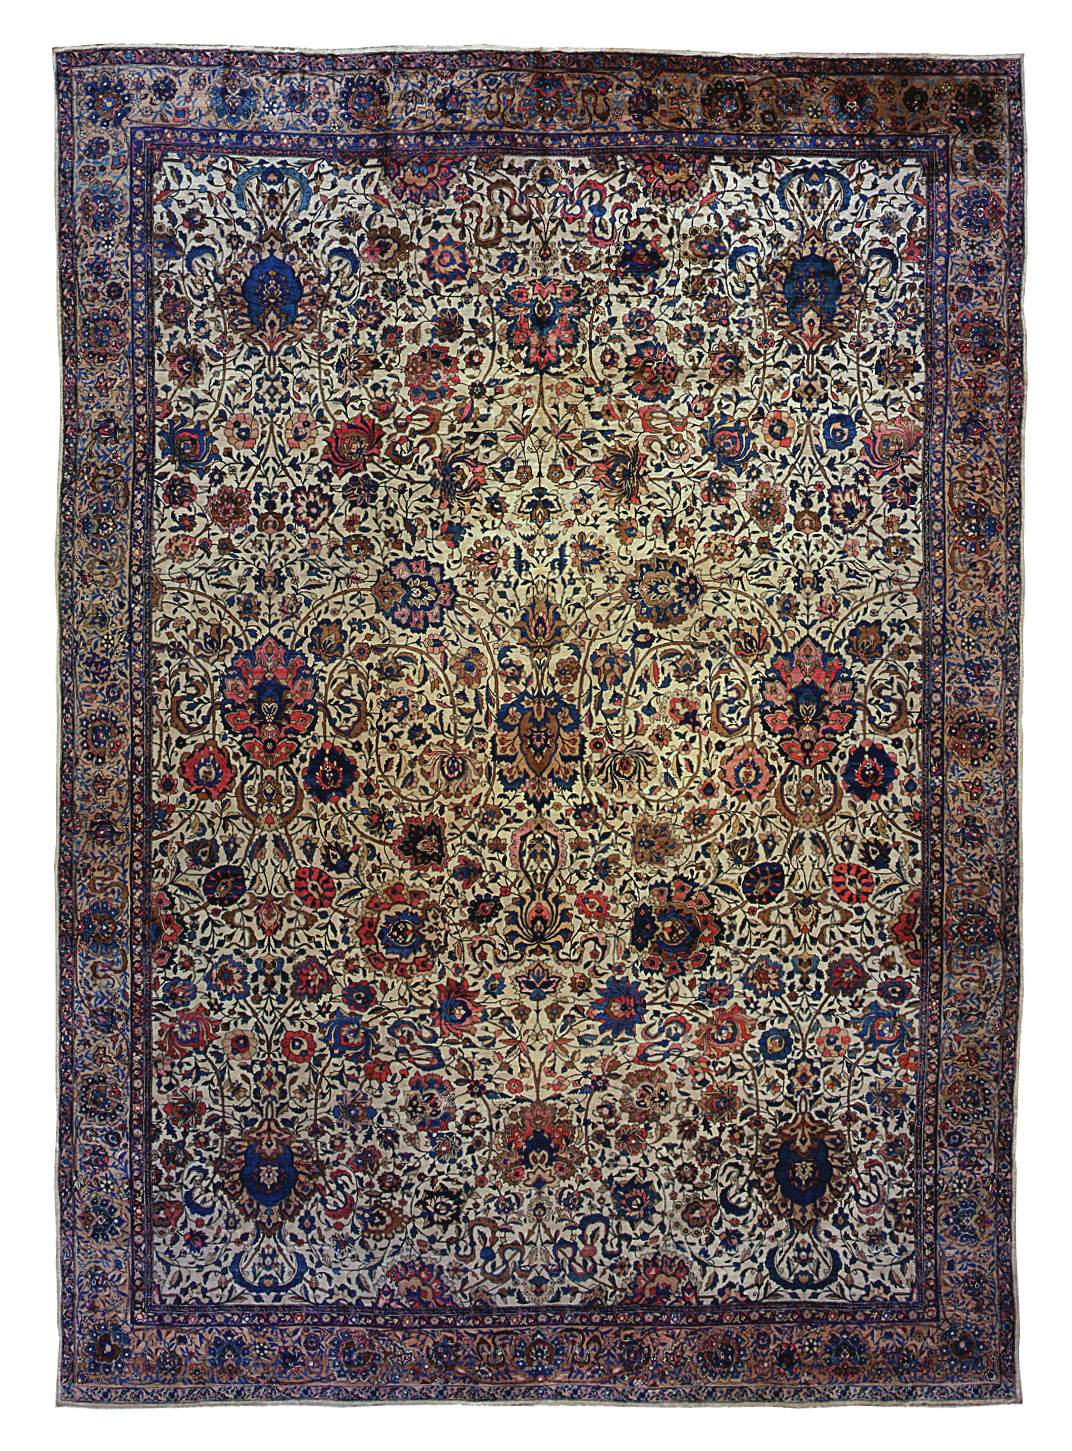 "Copy of Indo-Isfahan Carpet 20' 6"" x 14' 8"""